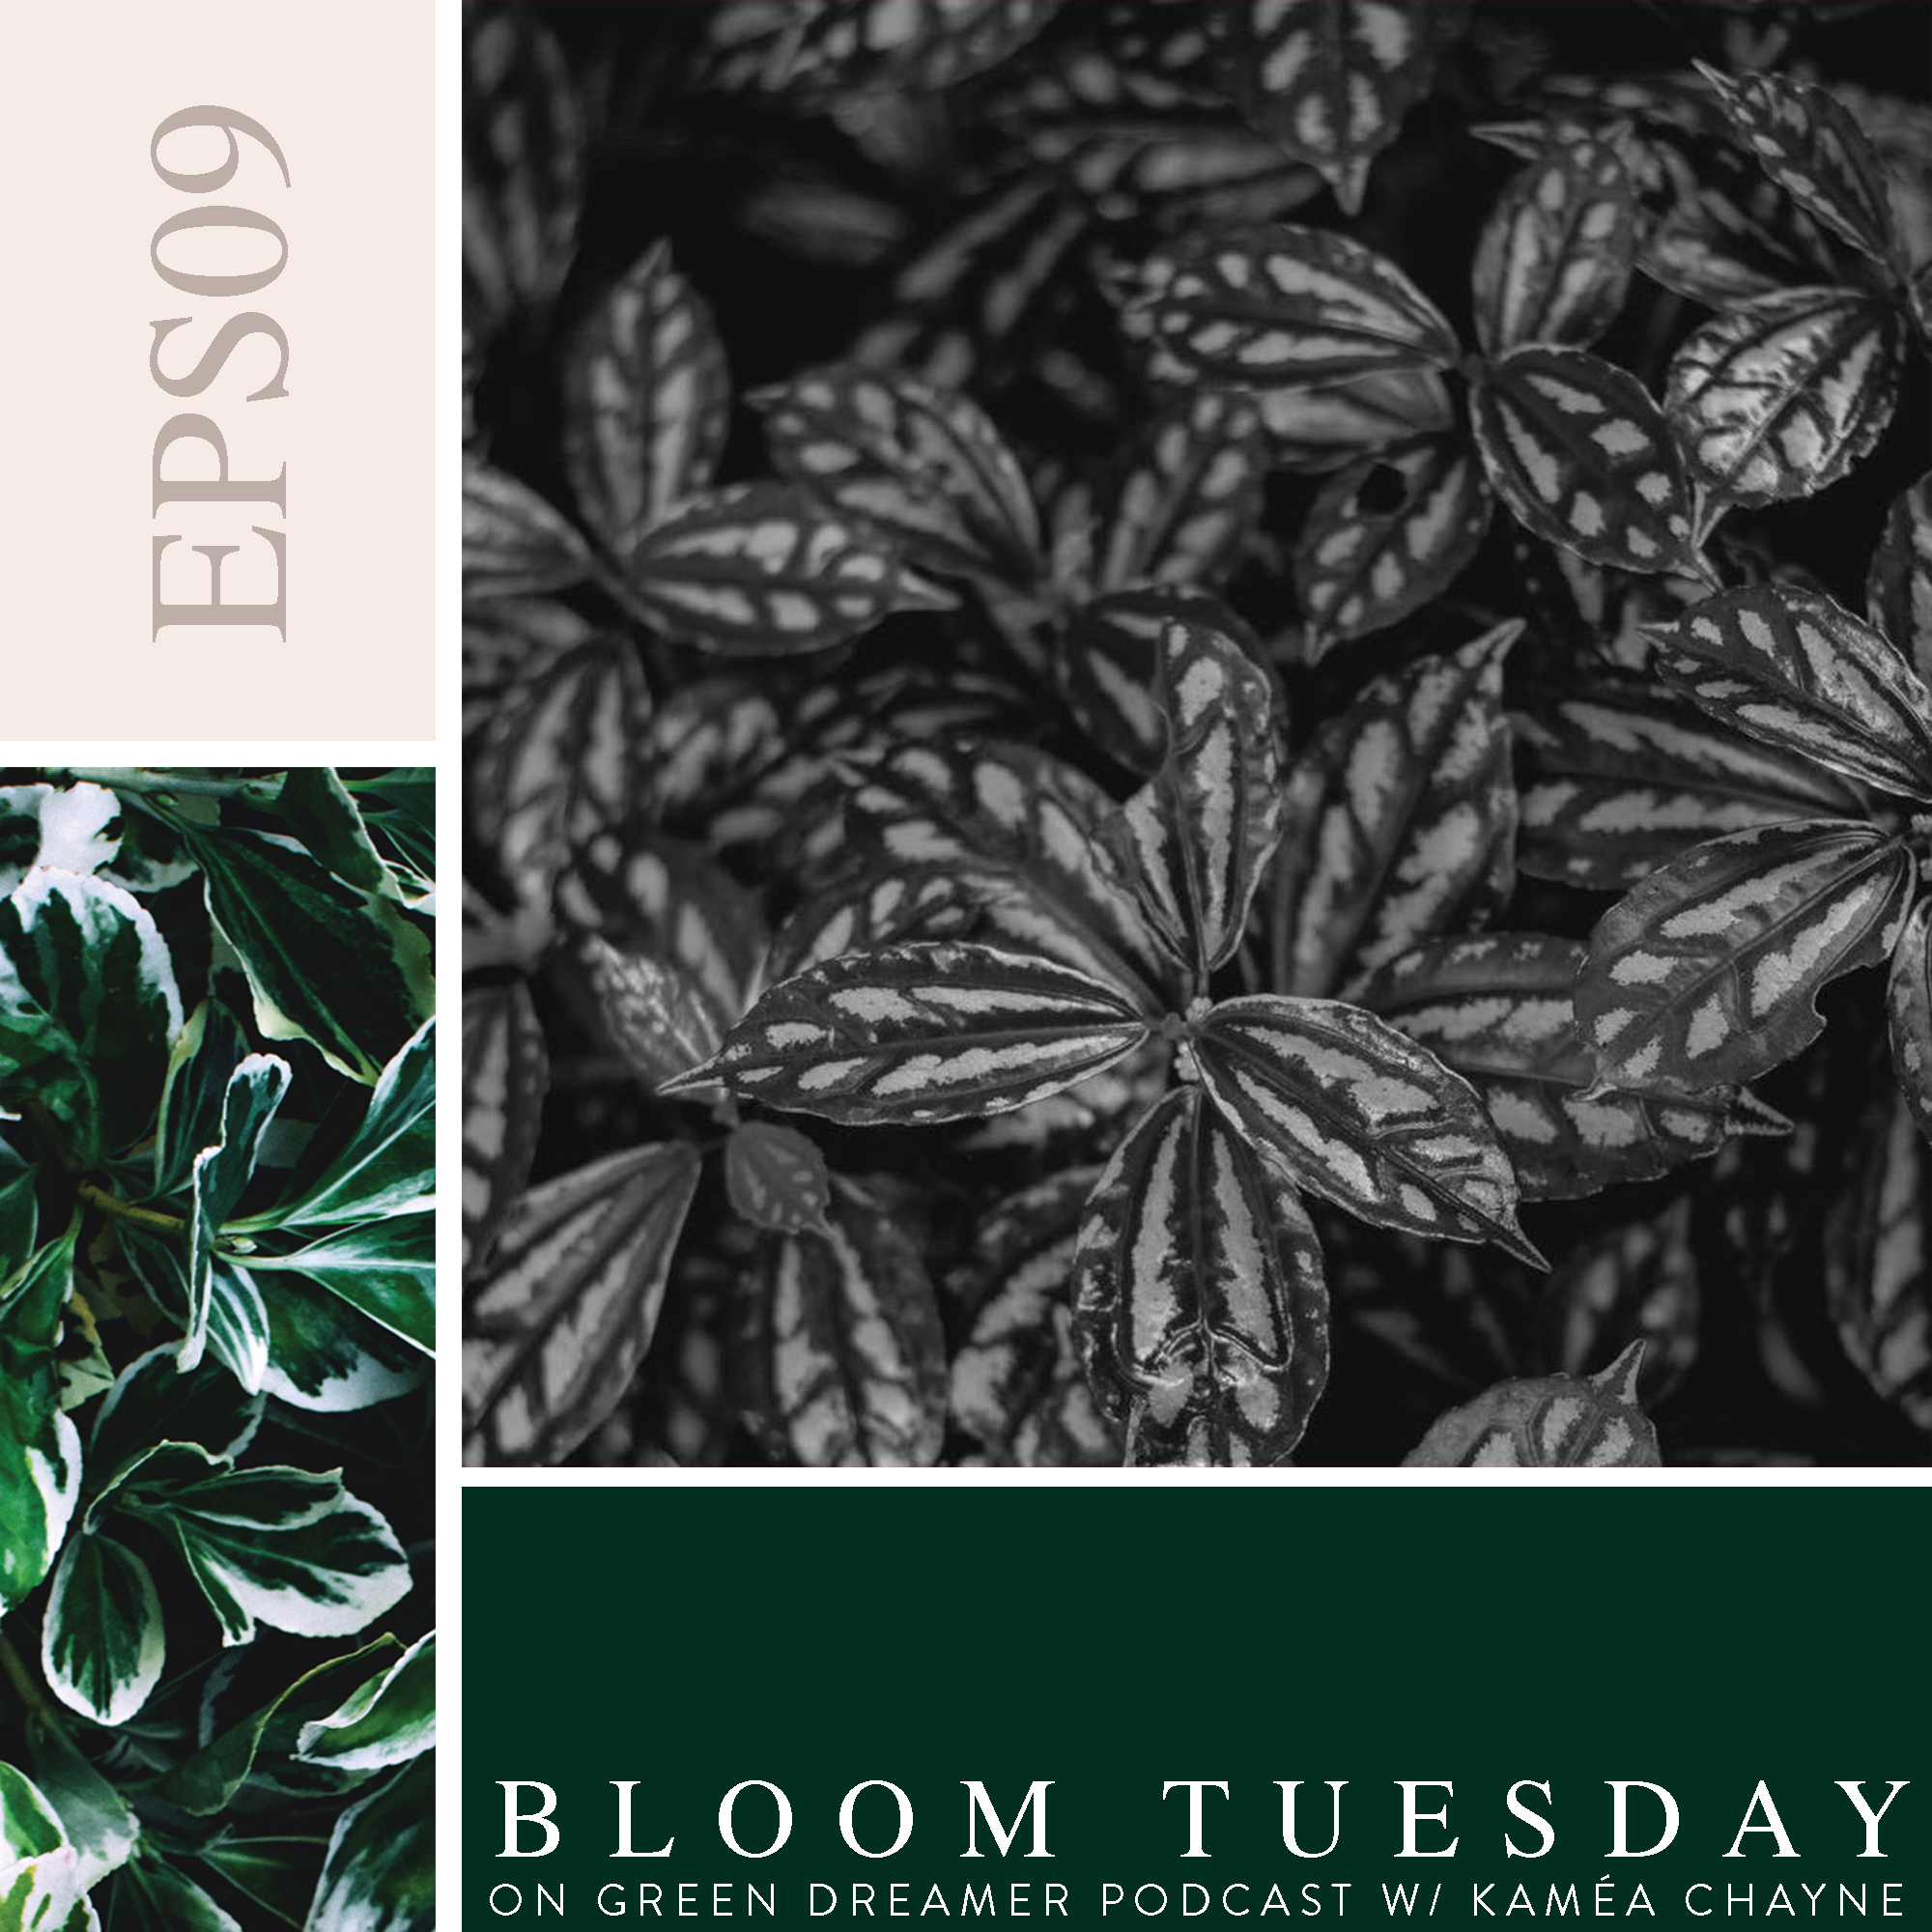 09) BLOOM TUESDAY